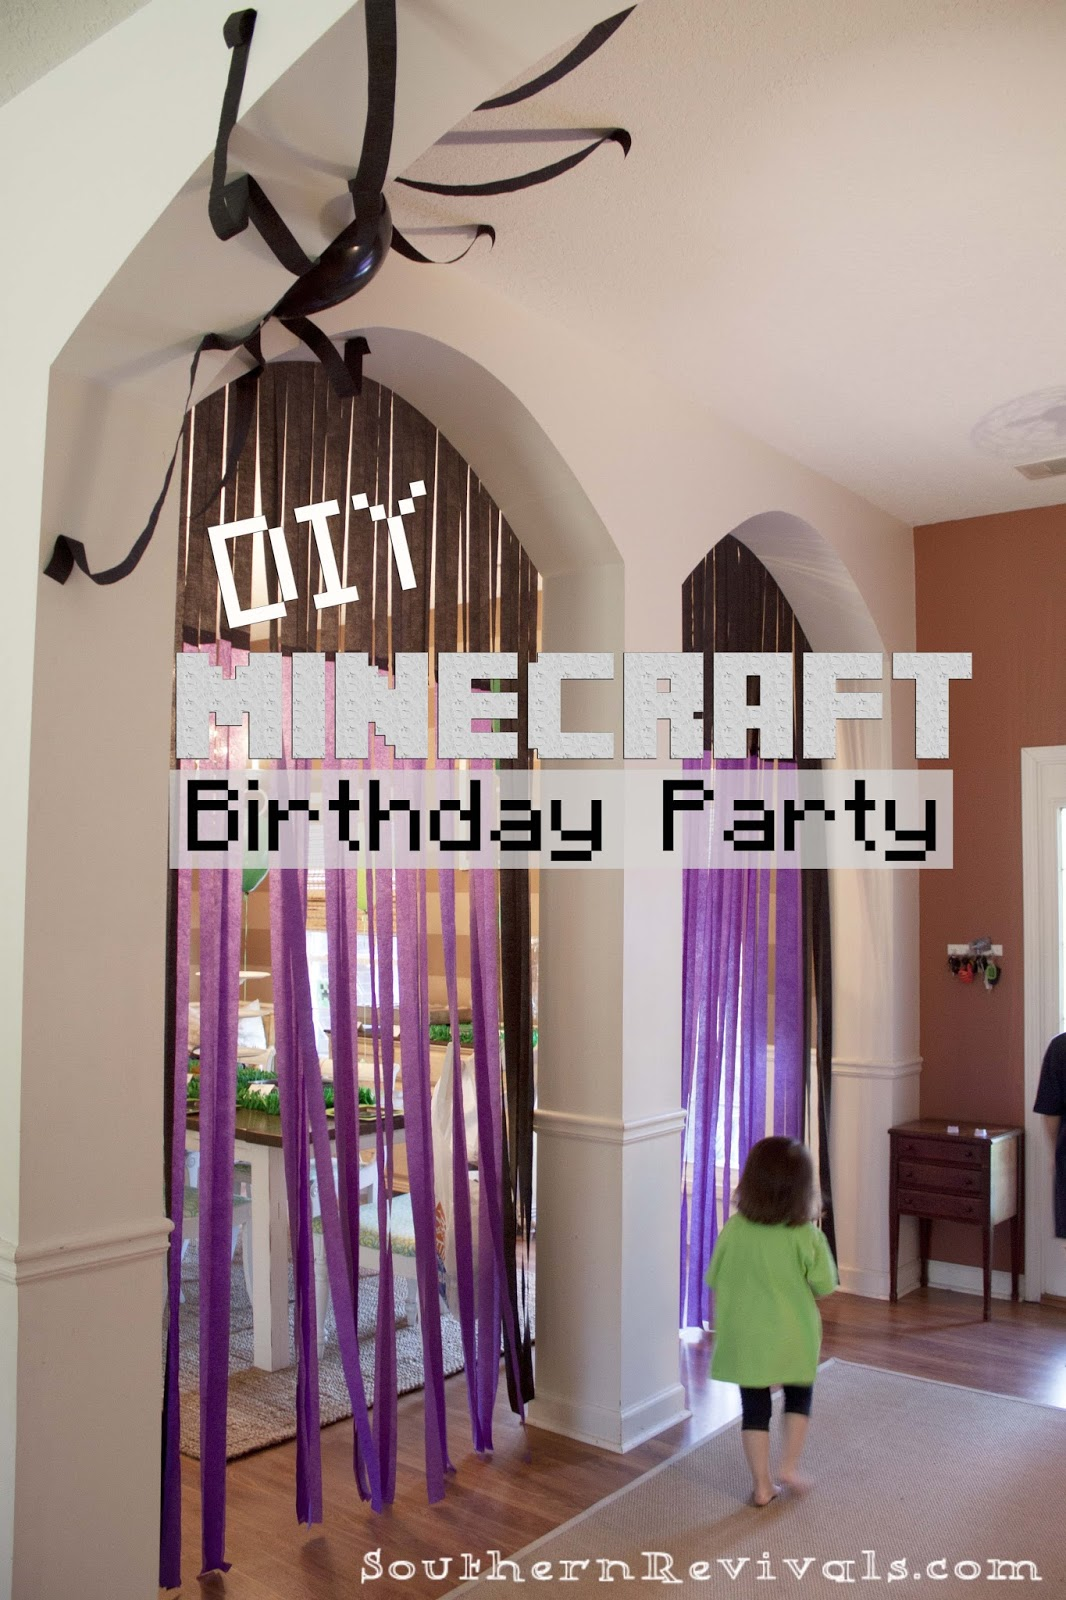 Minecraft Party Decorations Diy Minecraft Birthday Party Craft Ideas Party Favors